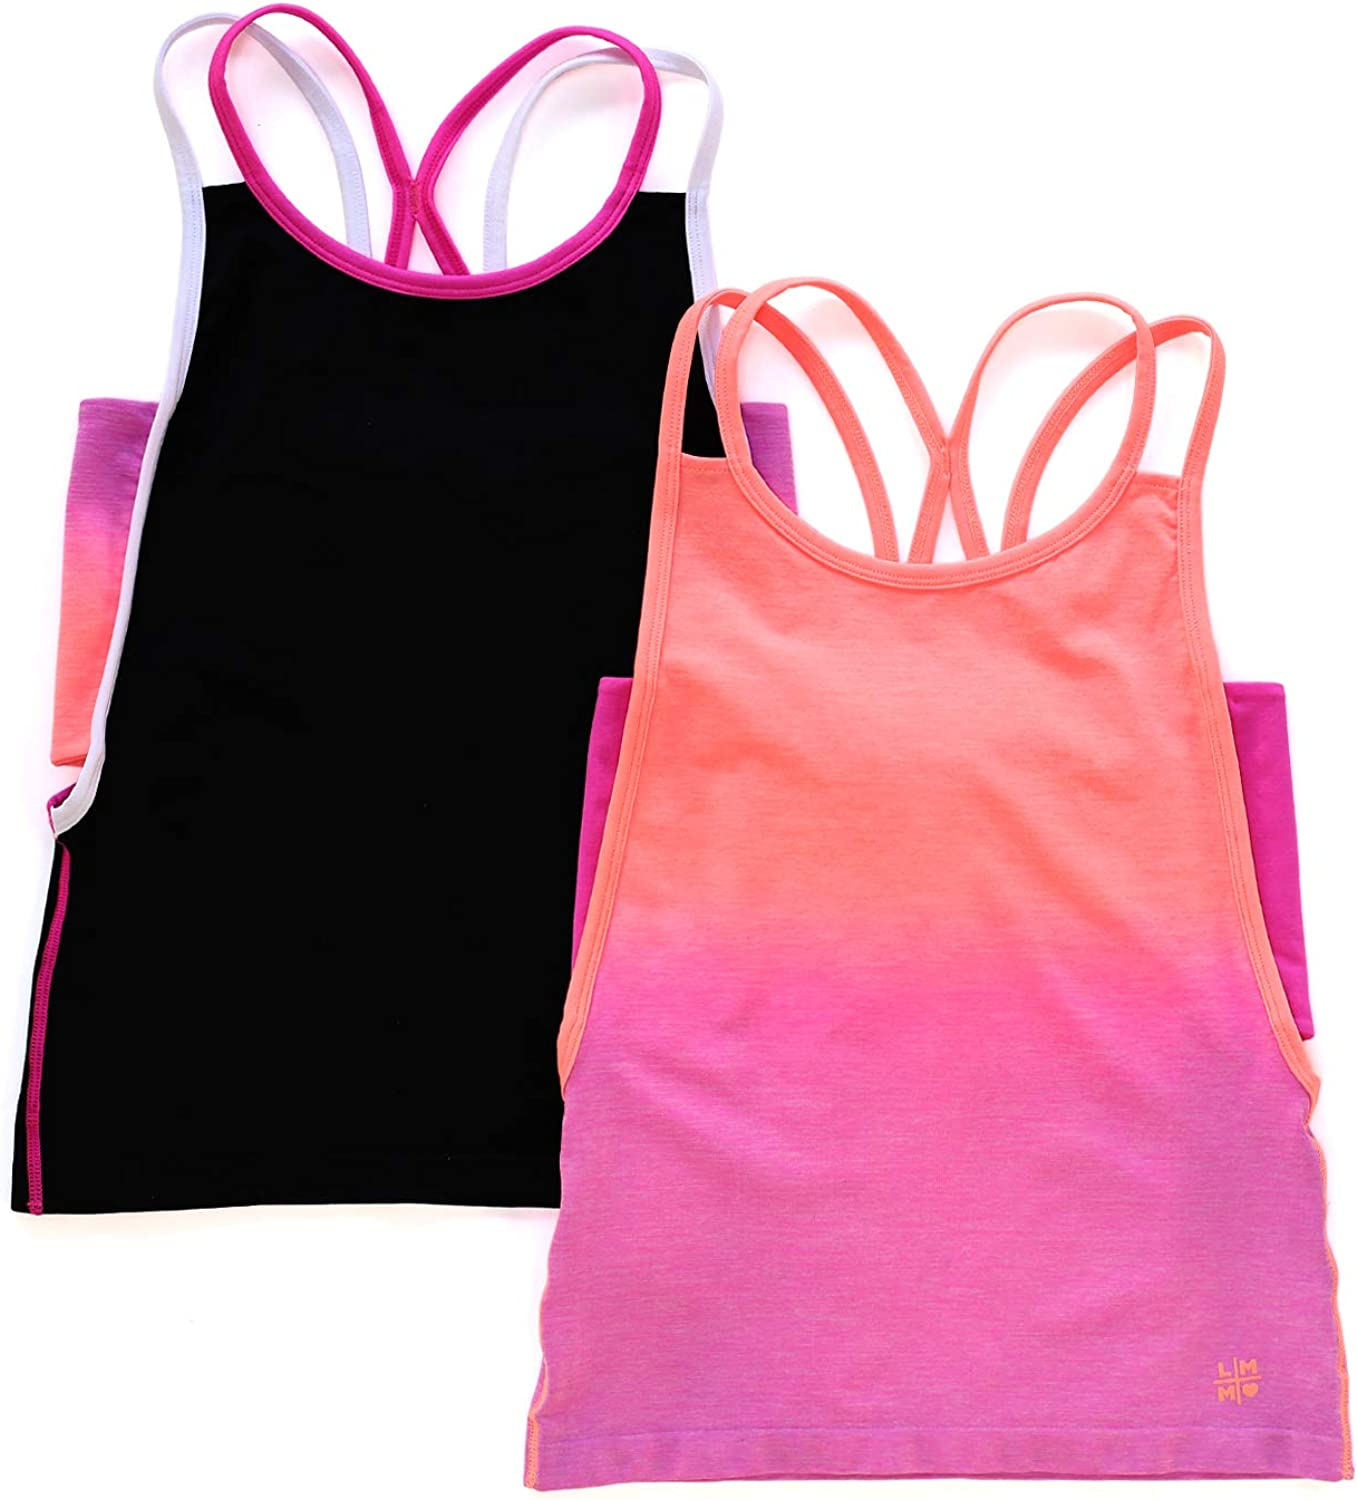 LittleMissMatched Strappy Back Tank 2-Pack (Solid & Ombre Colors)